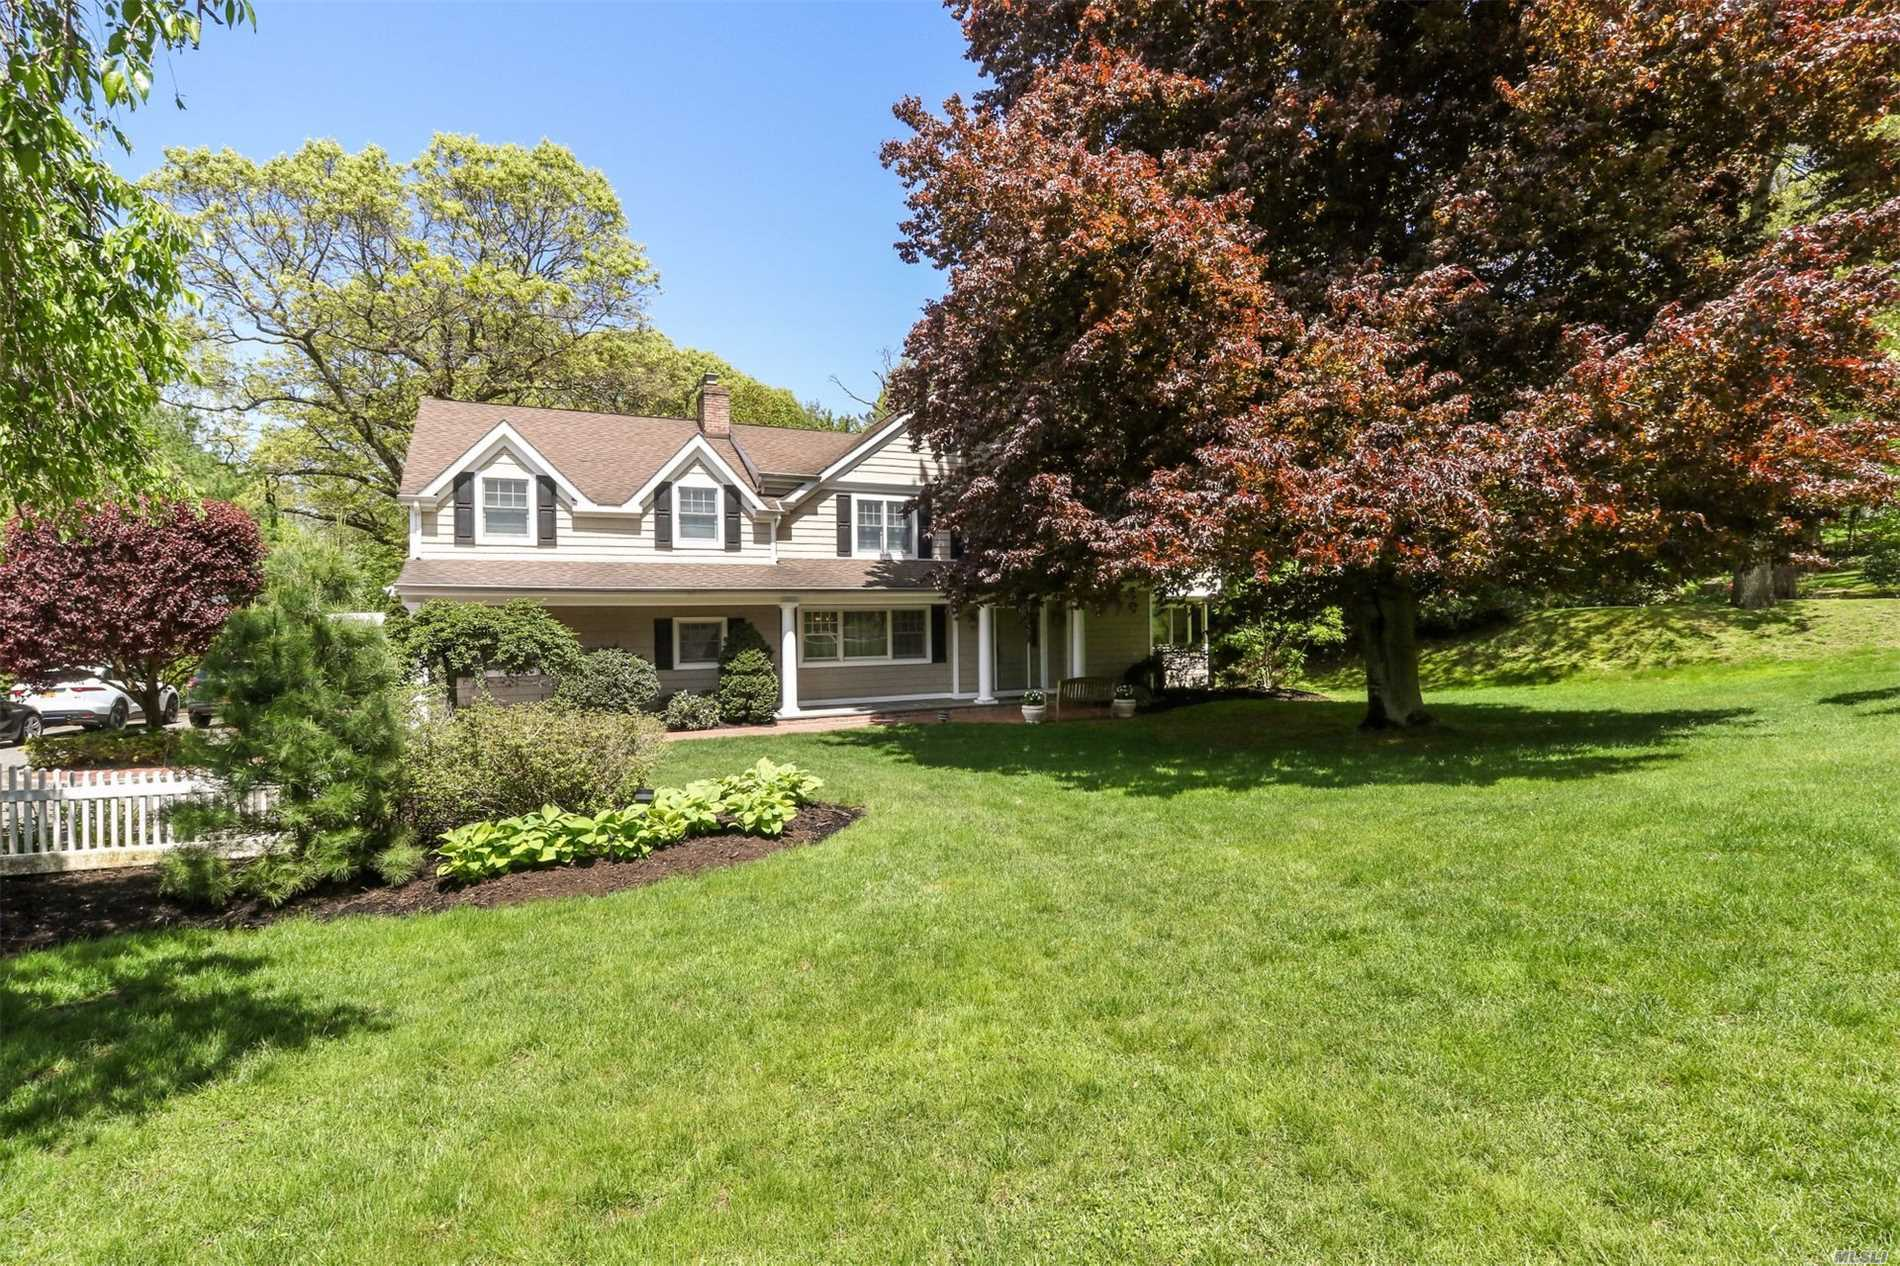 GORGEOUS home in The Gates of Woodbury. This exquisite 7 bedrm colonial is custom built & renovated to perfection. The gourmet Chef's kitchen has every amenity & opens to the XL Dining Rm w/fpl, Den w/fpl, Library w/bar & Living Rm. Entire house is GAS. The 2nd floor has a large Mster Ste w/fpl, balcony, luxury spa bath w/radiant ht + 2 HUGE WIC, in addition to 4 other bedrms & 3 baths + laundry (2 Ensuites). IG pool, paver patio & full house generator. Full bsmt - Syosset SD-- WW Elem/HBT.